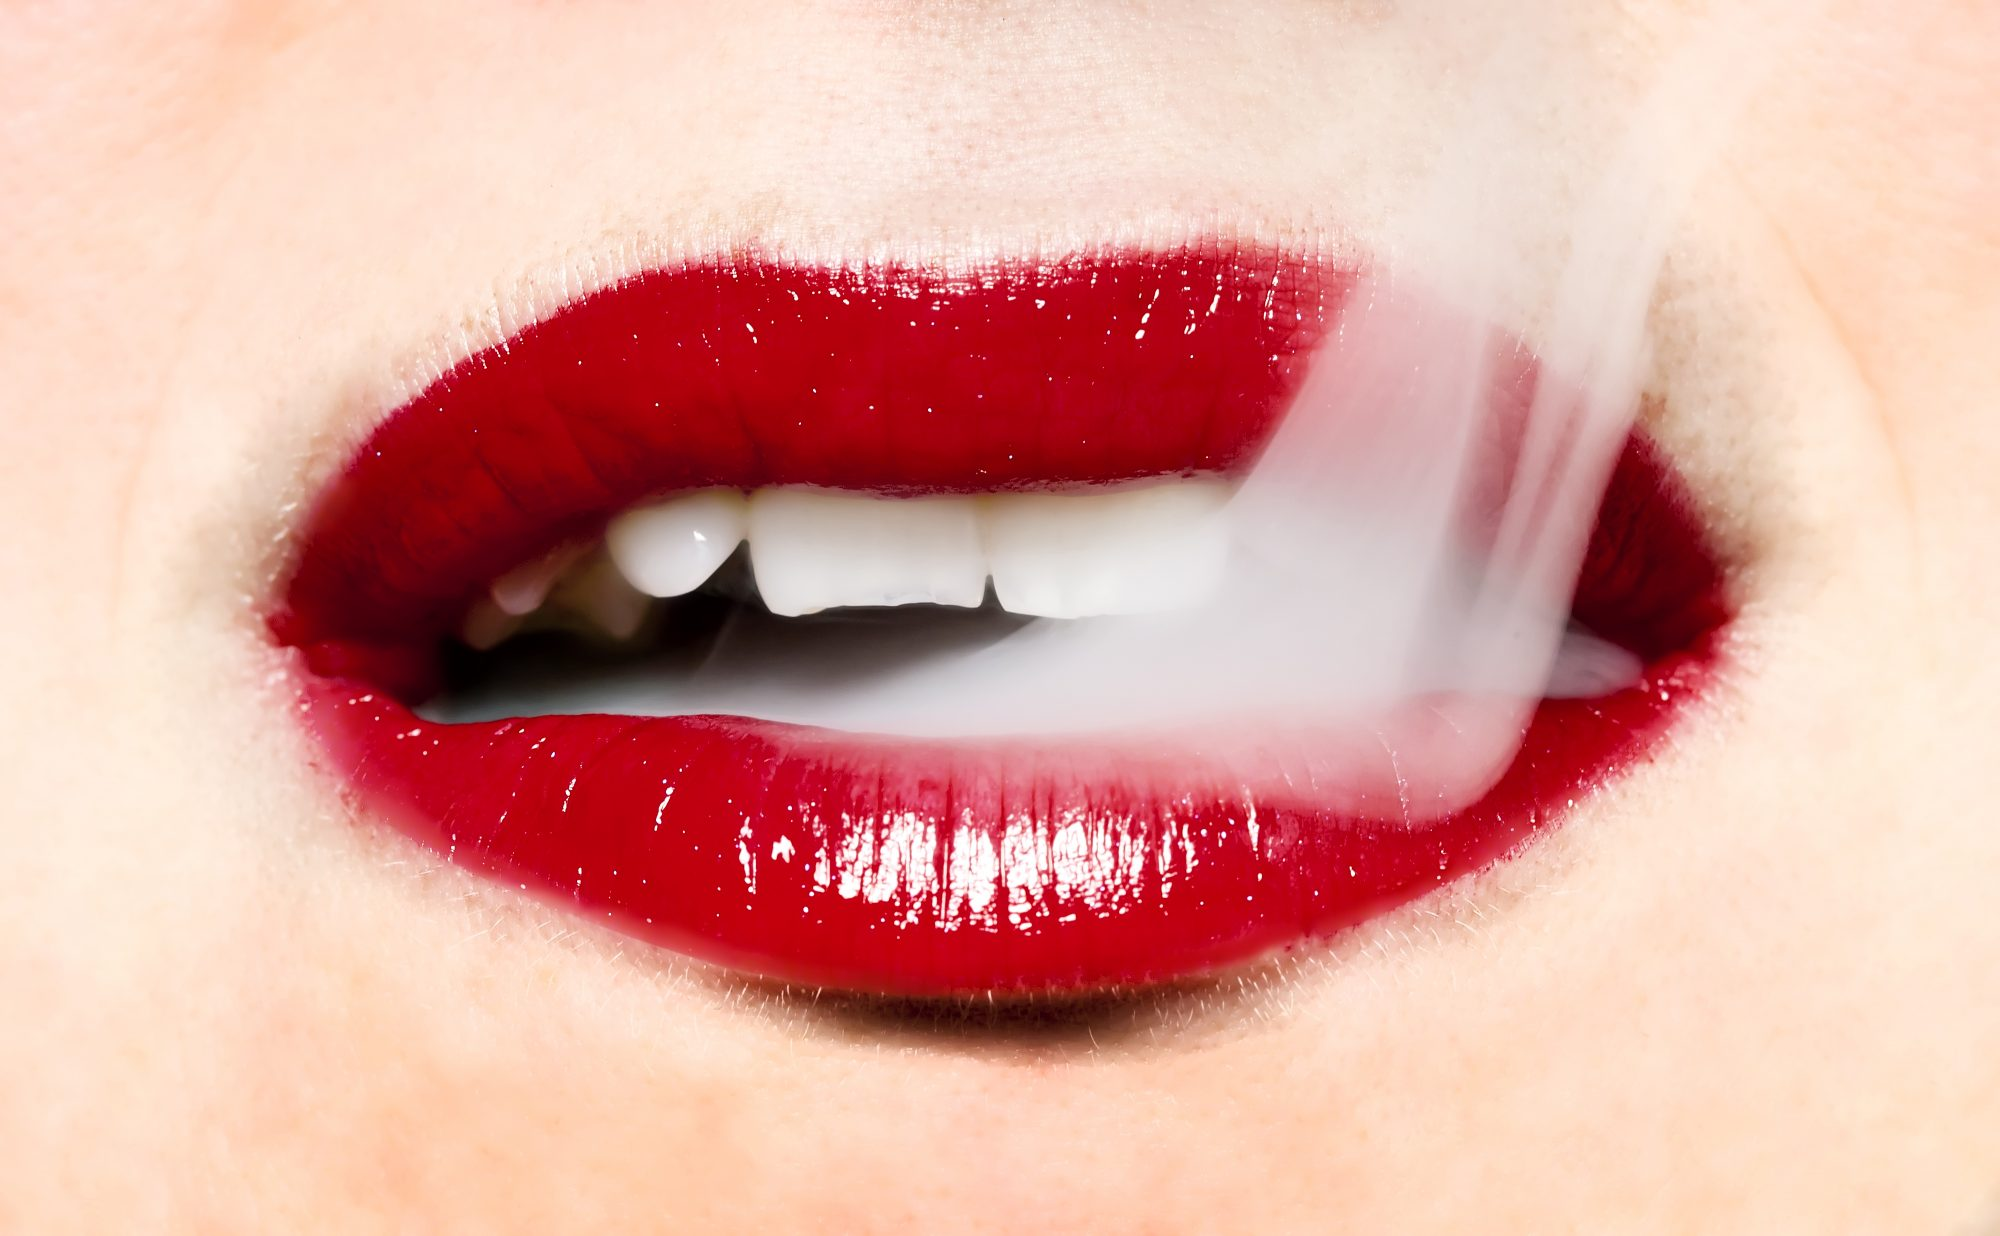 Is Vaping Bad for Your Teeth? Here's What Dental Experts Have to Say